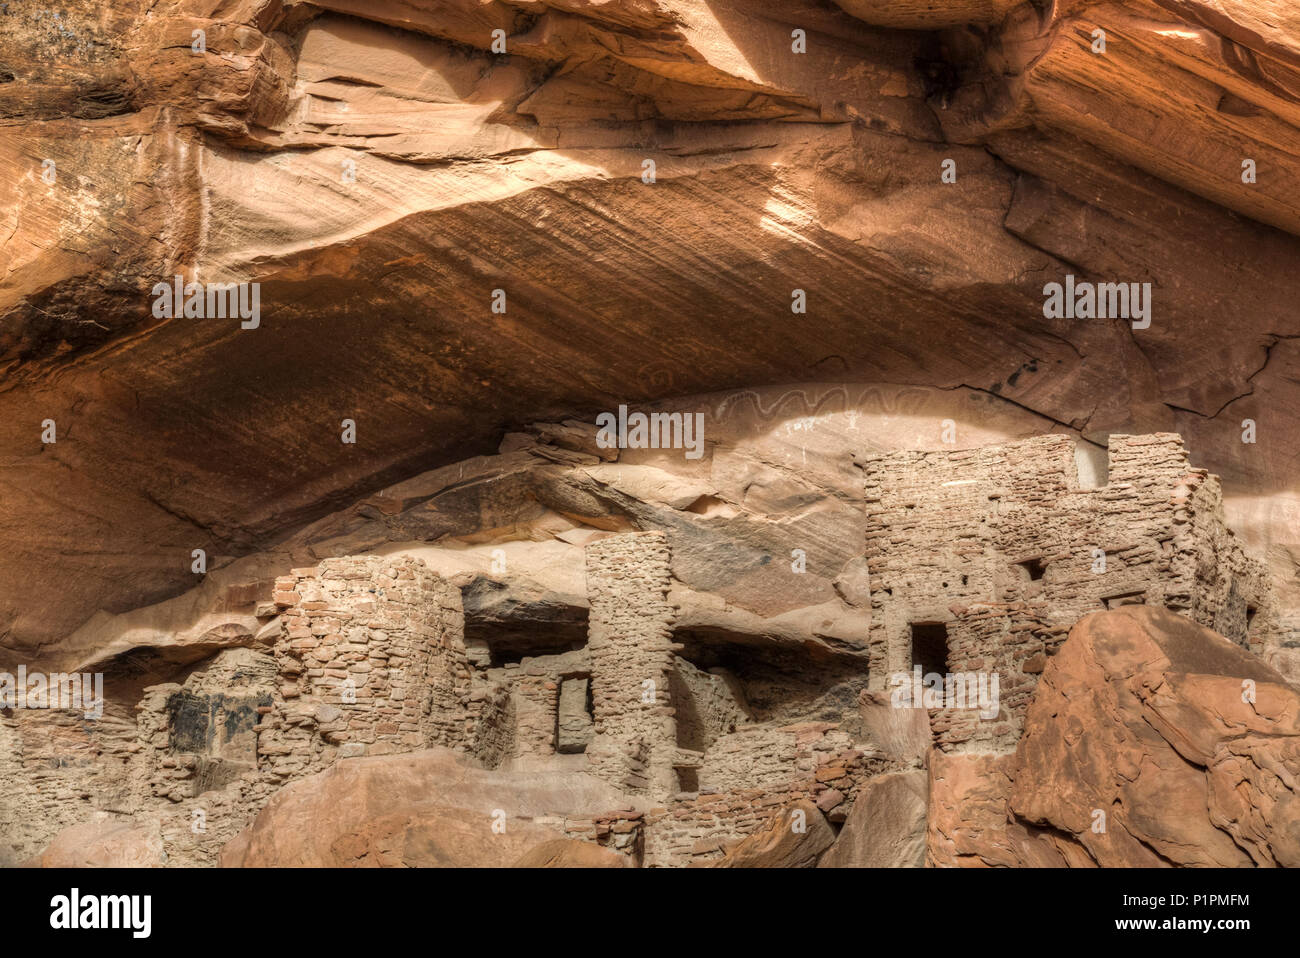 River House Ruin, Ancestral Puebloan Cliff Dwelling, 900-1300 AD, Shash Jaa National Monument; Utah, United States of America - Stock Image